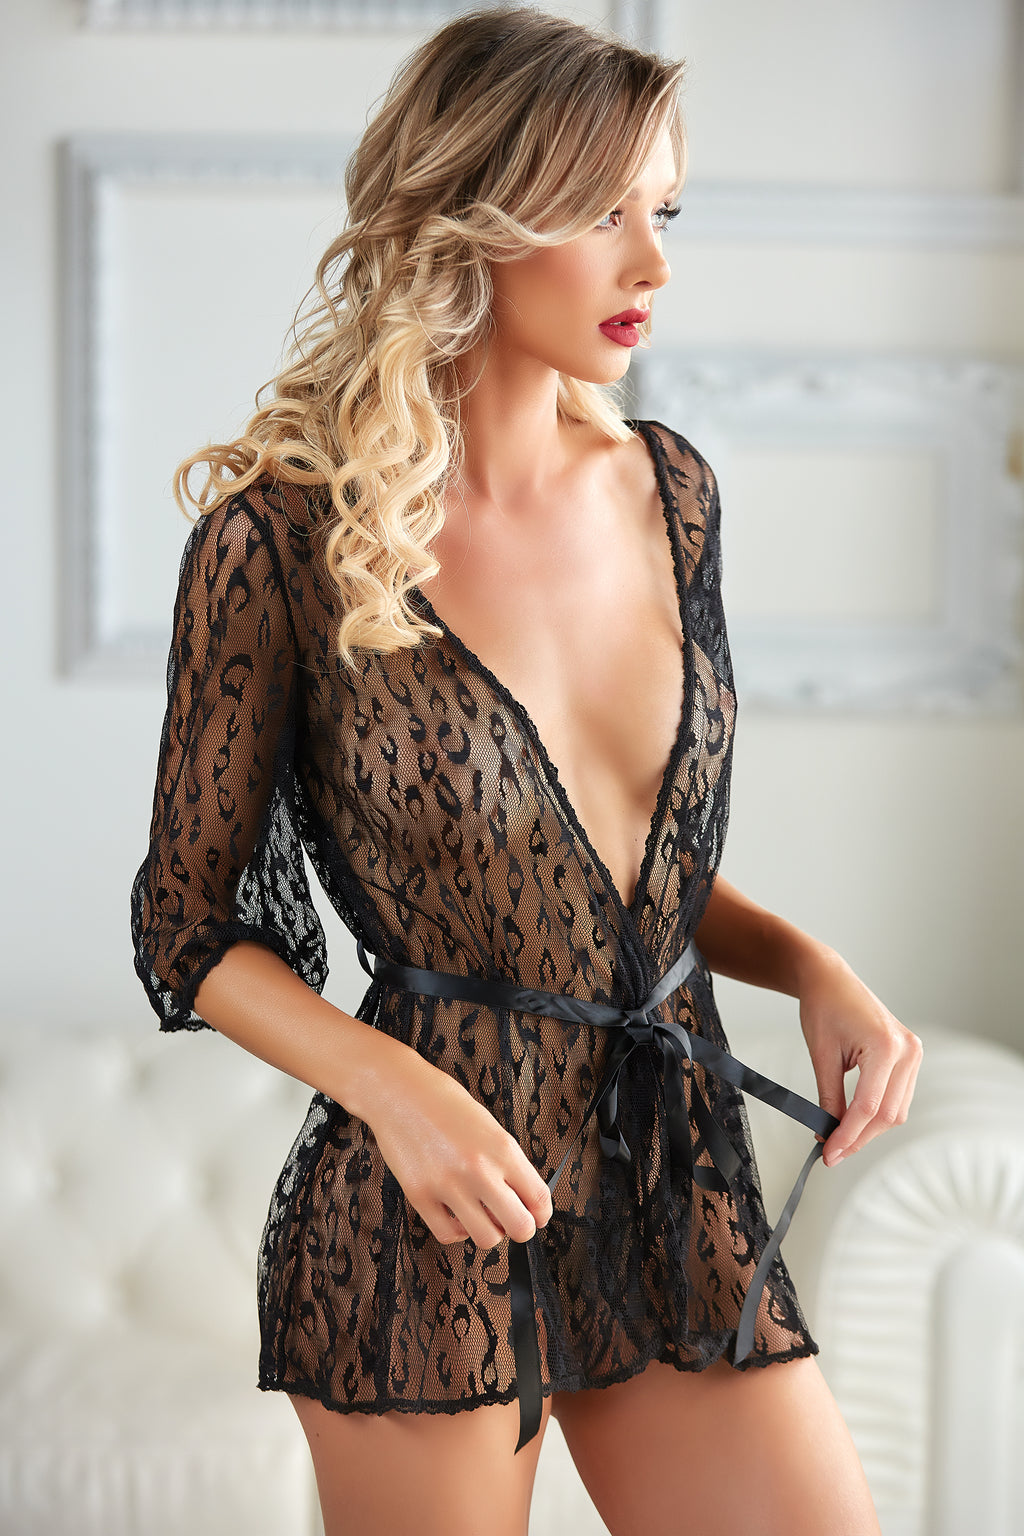 Valentina Leopard Lace Robe with G-string (also in plus size)